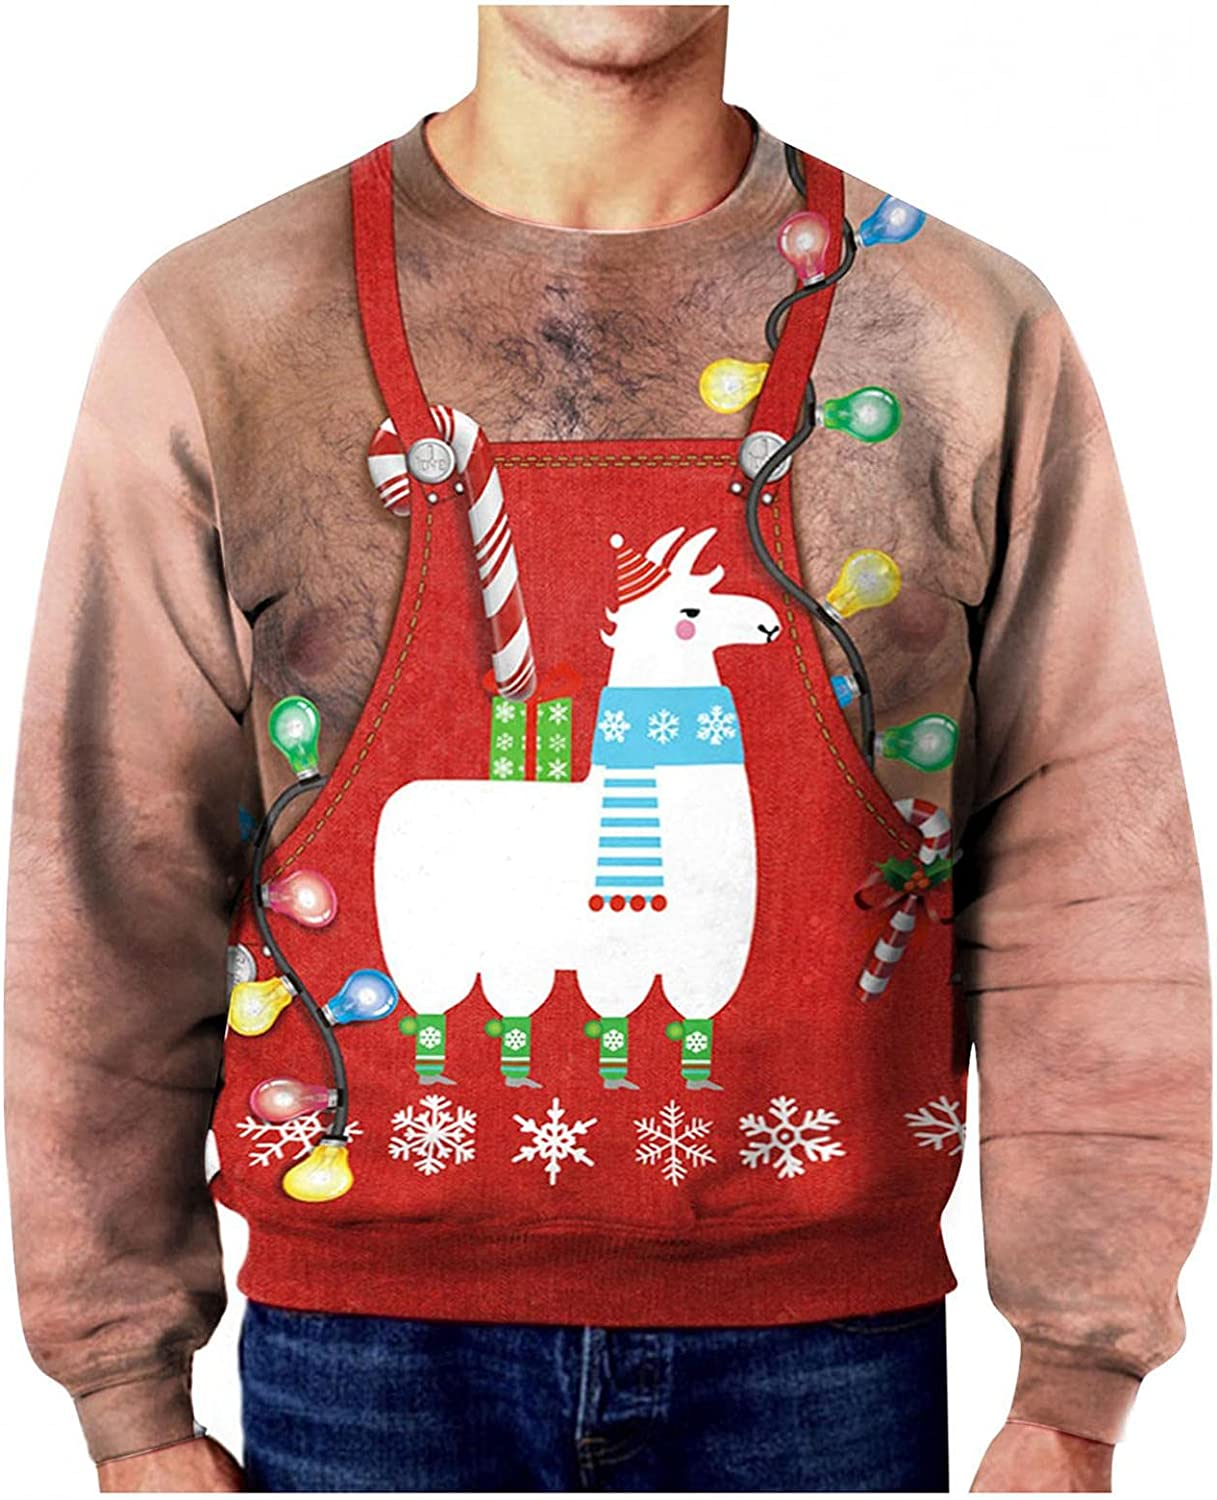 Men Women Funny Ugly Christmas Sweatshirt 3D Digital Printed Graphic Pullover Top Long Sleeve Couple Sweater Shirts for Party